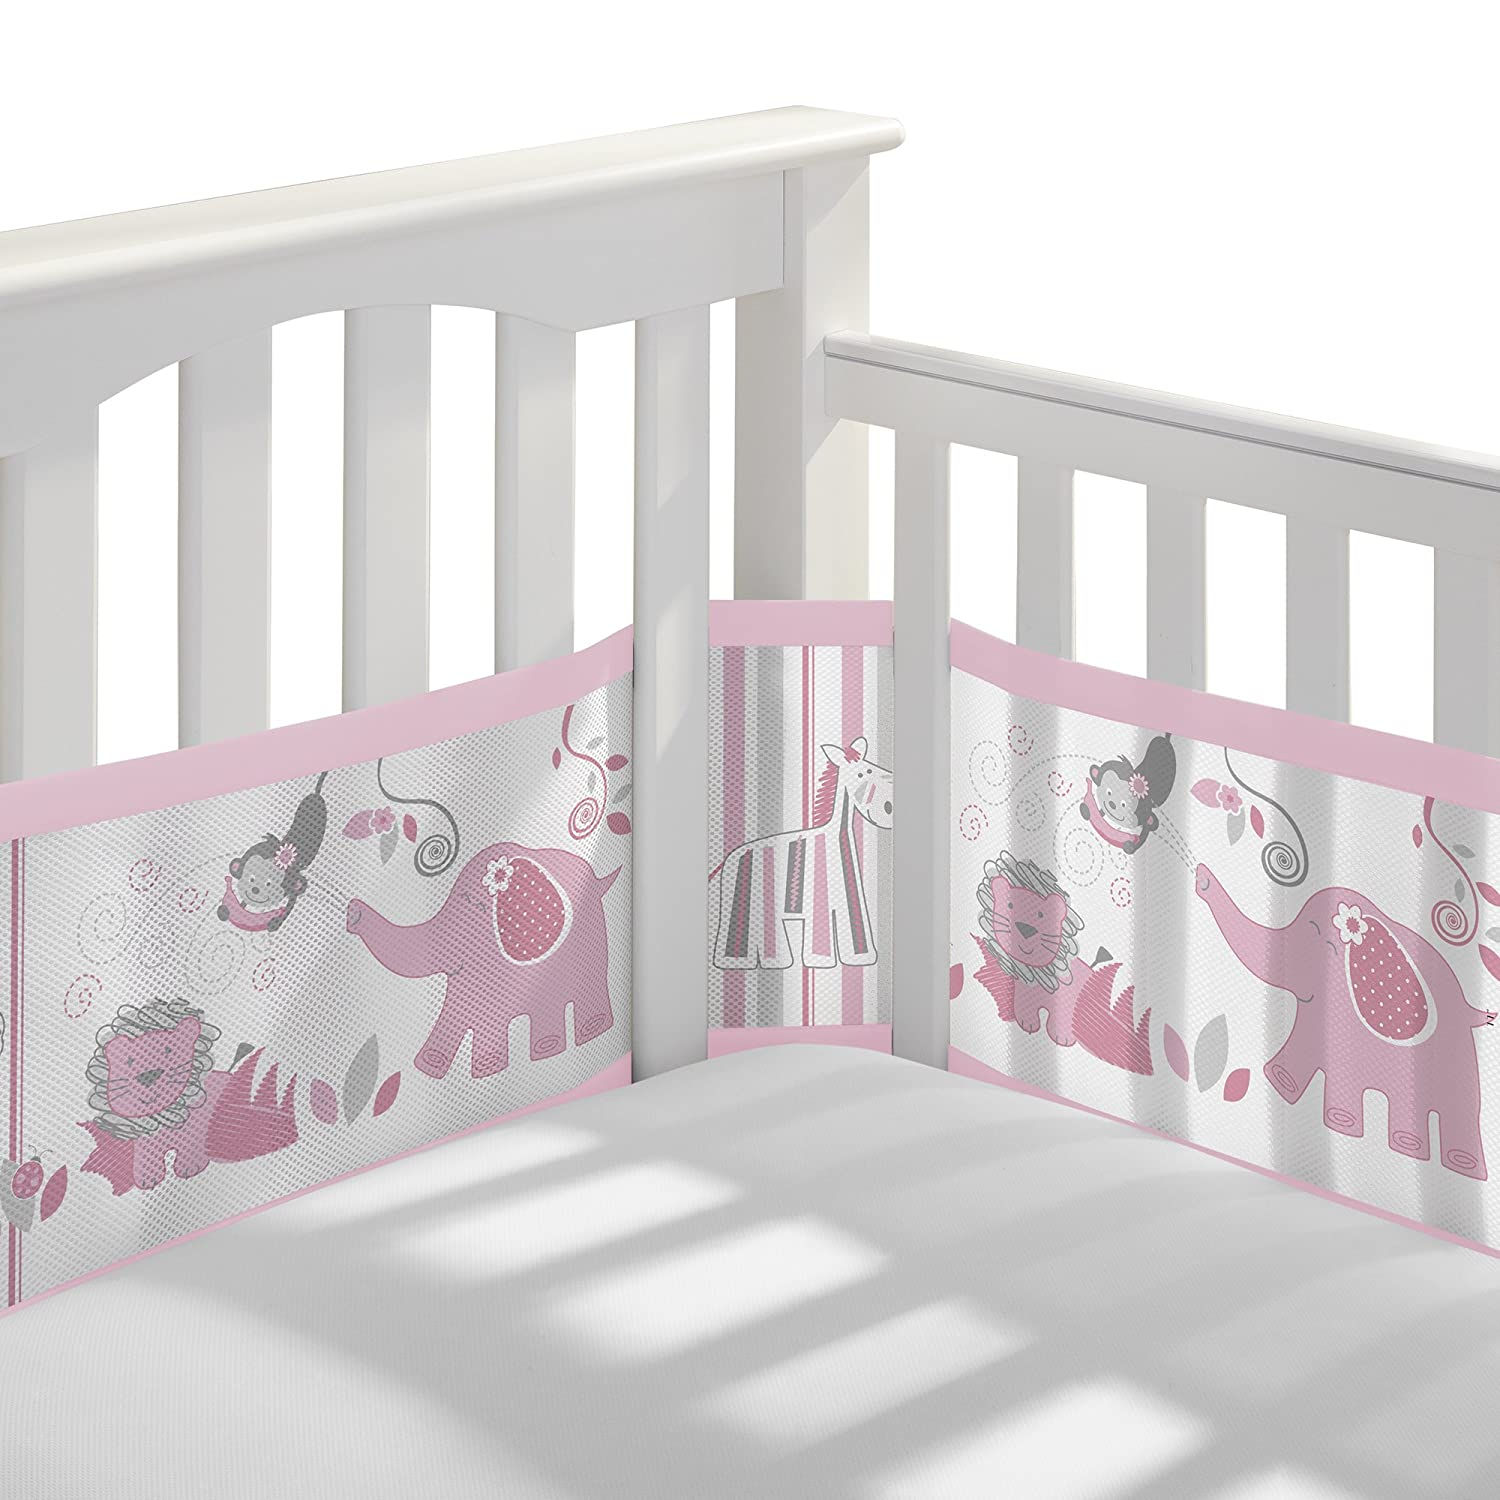 Top 10 Best Baby Crib Bumpers (2020 Reviews & Buying Guide) 3